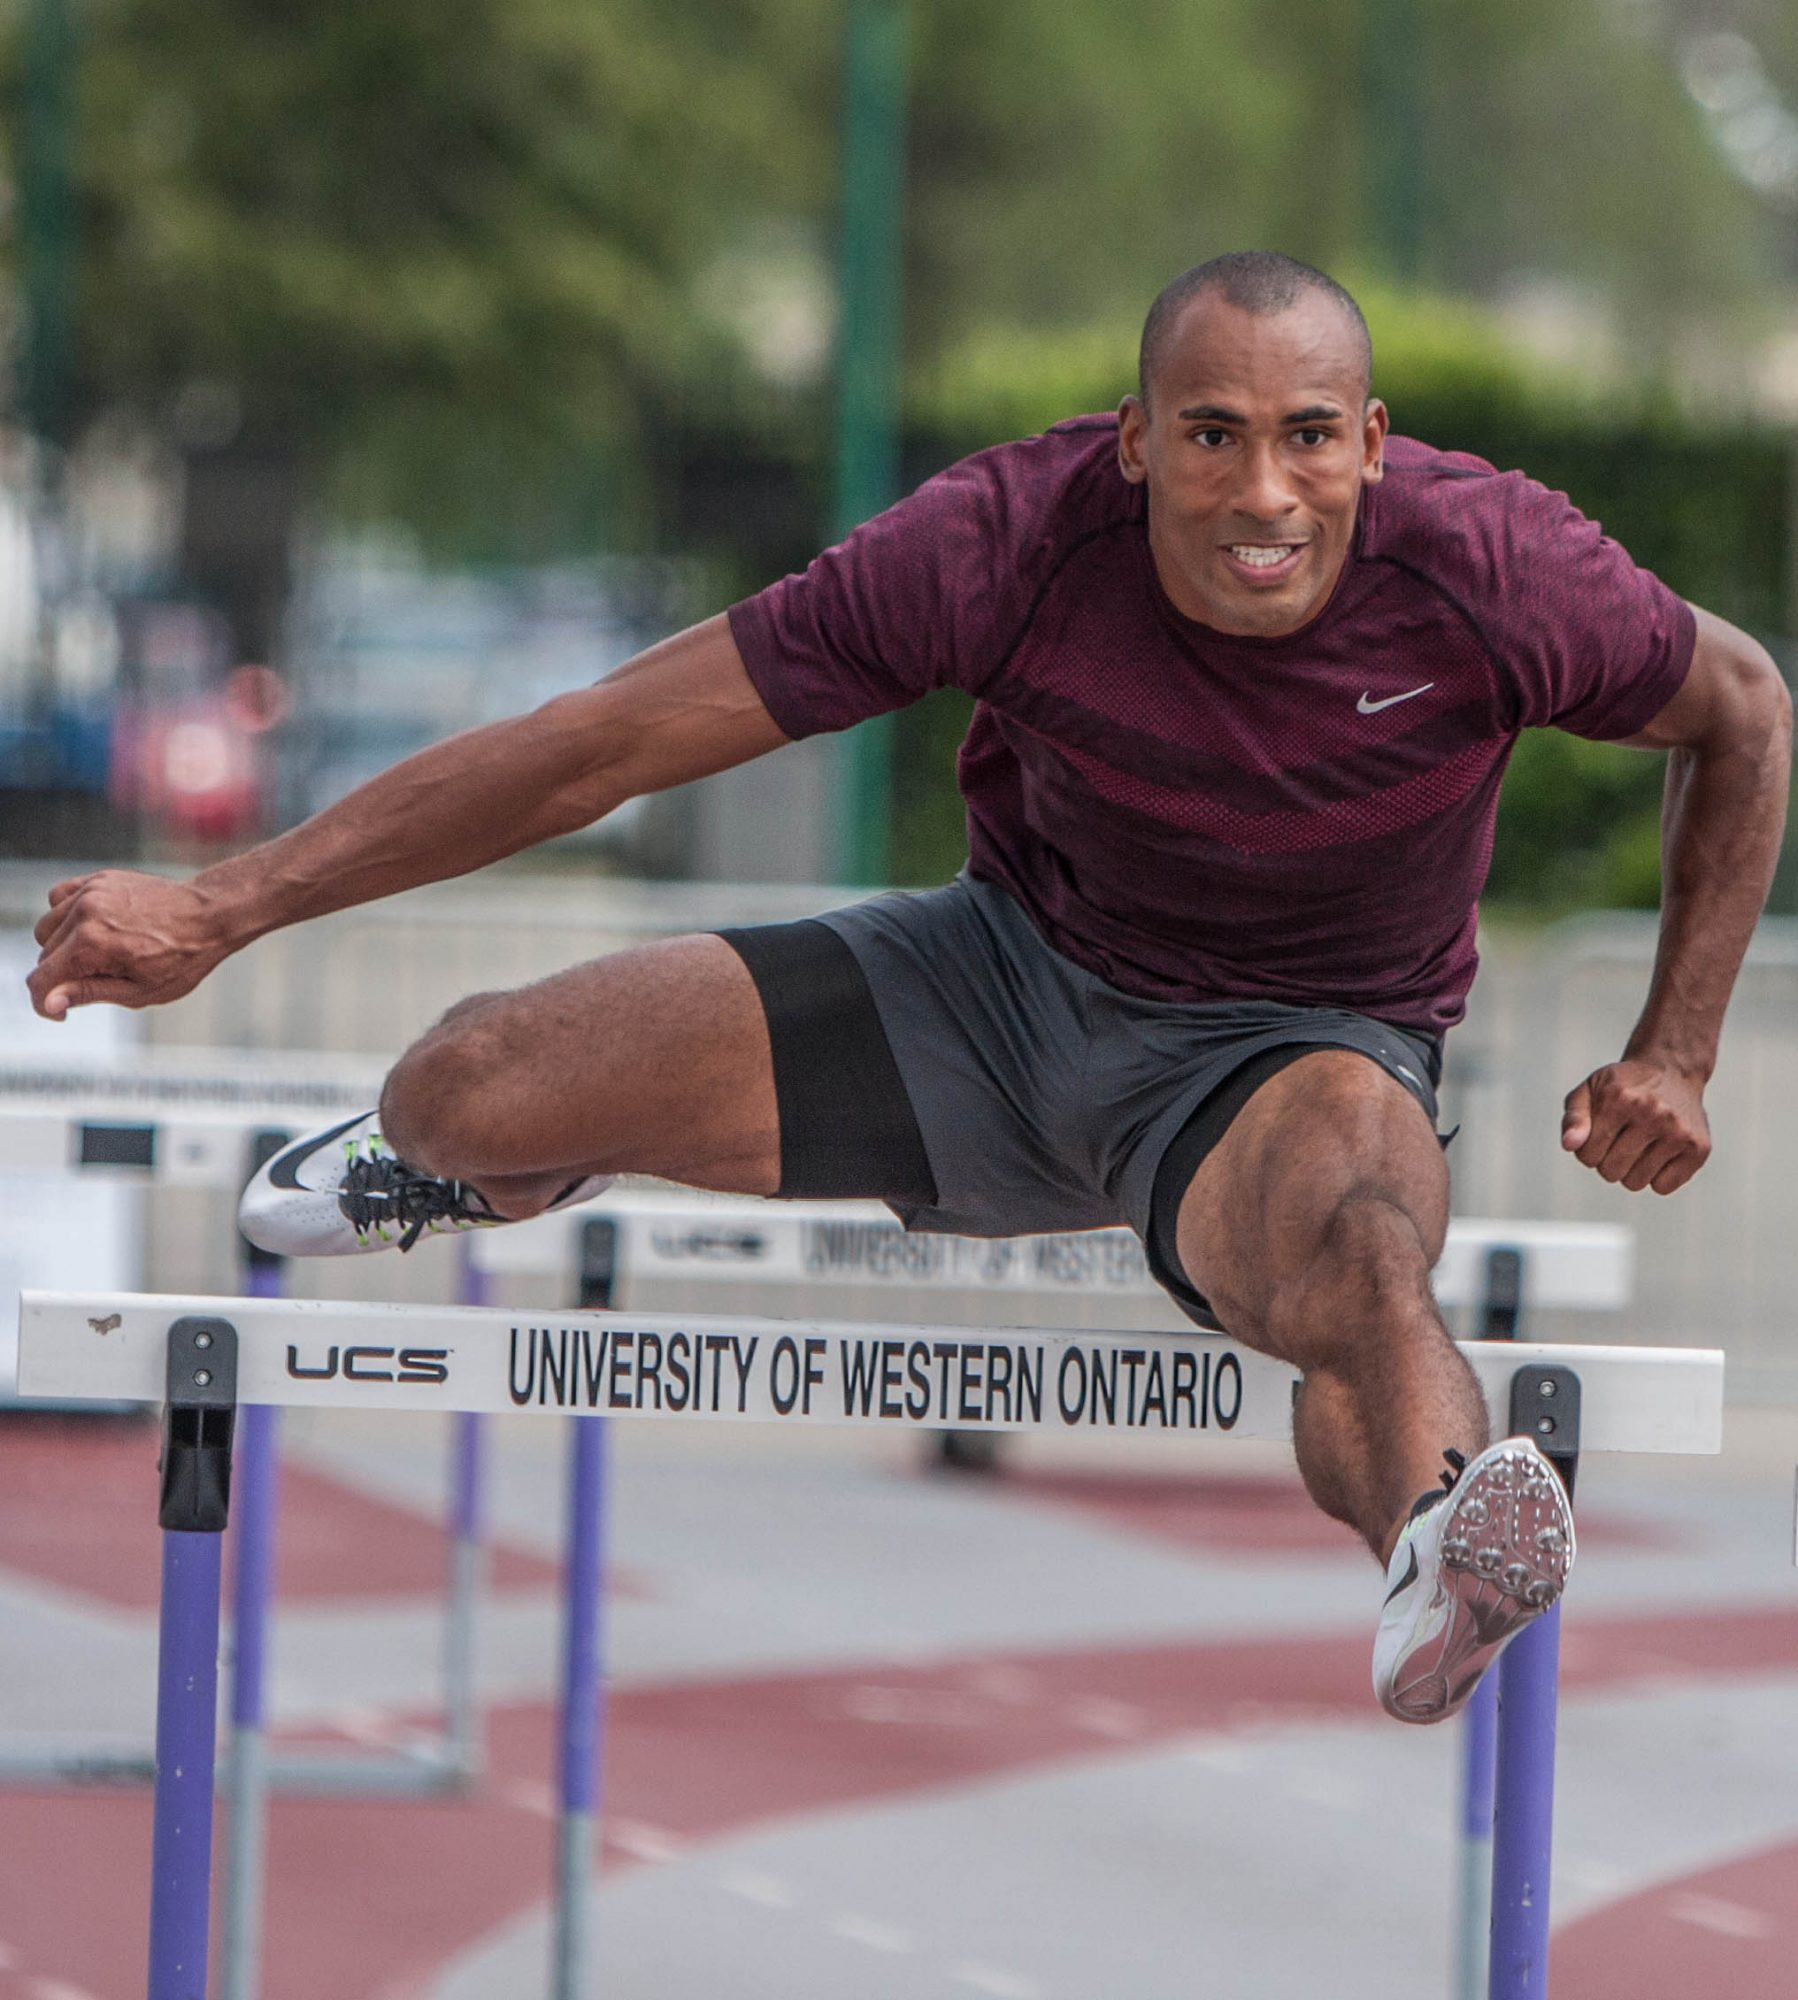 Damian hurdle training